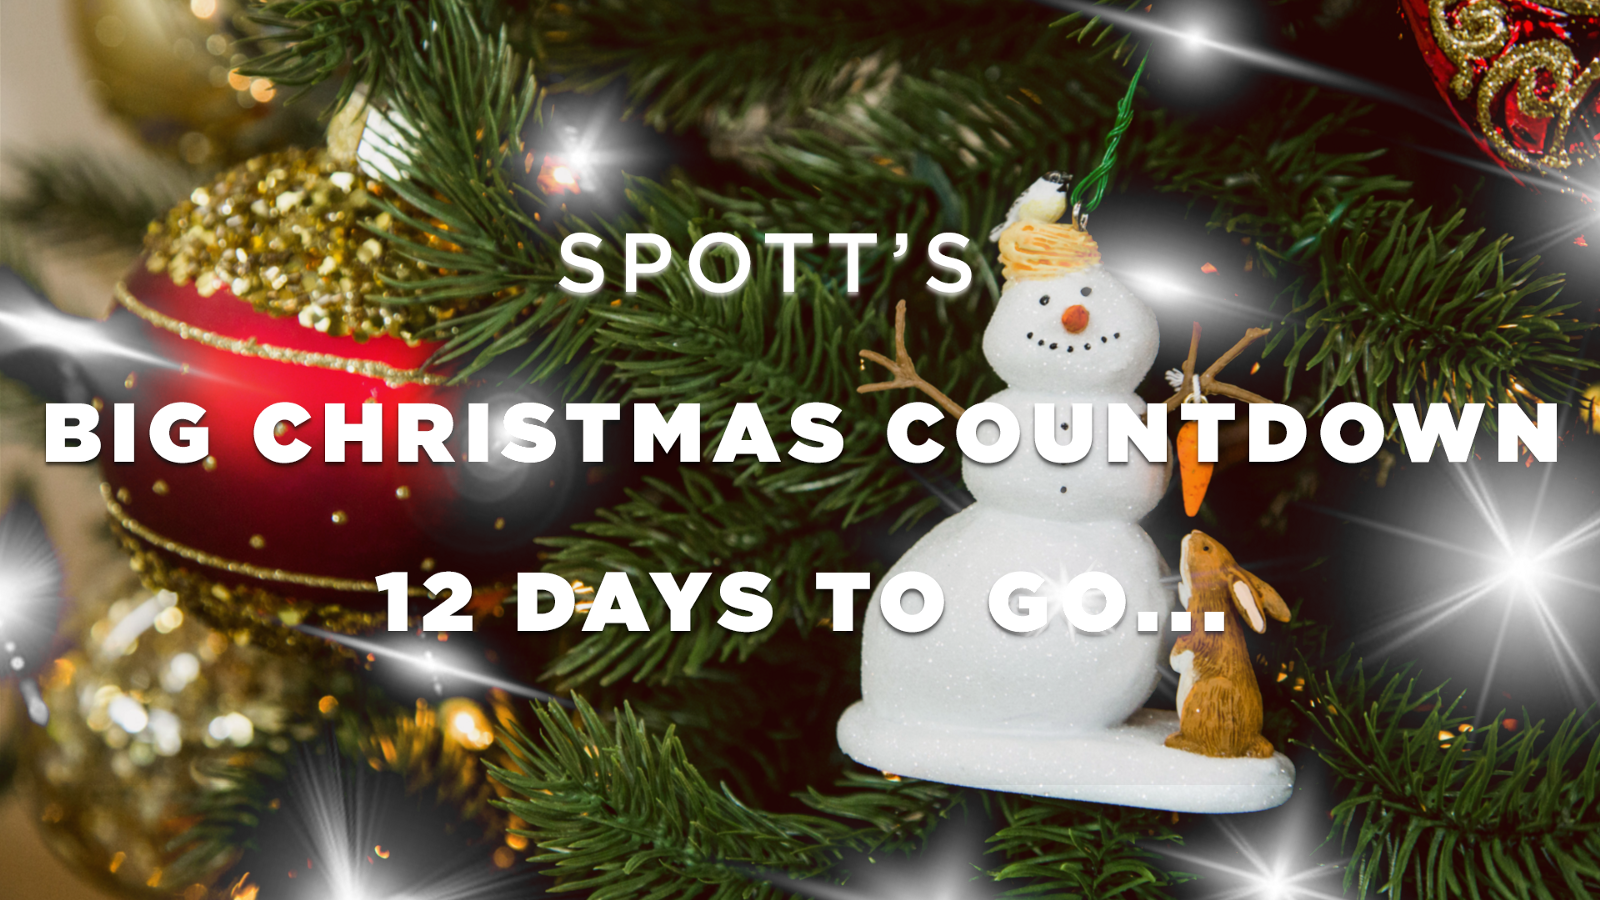 spotts big christmas countdown 12 days to go christmas decoration